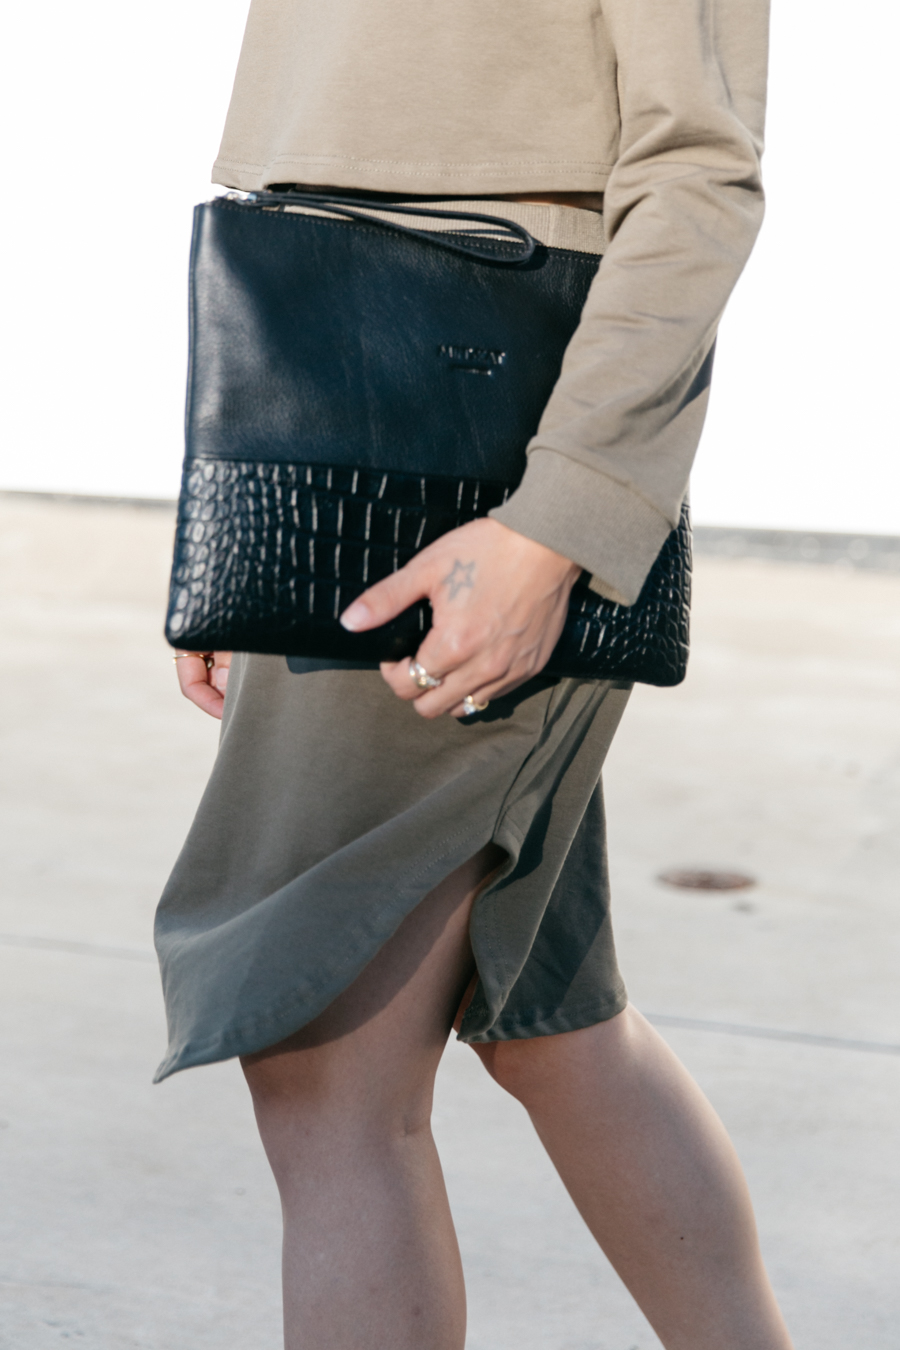 Black leather clutch from Danish design brand Minskat Copenhagen.